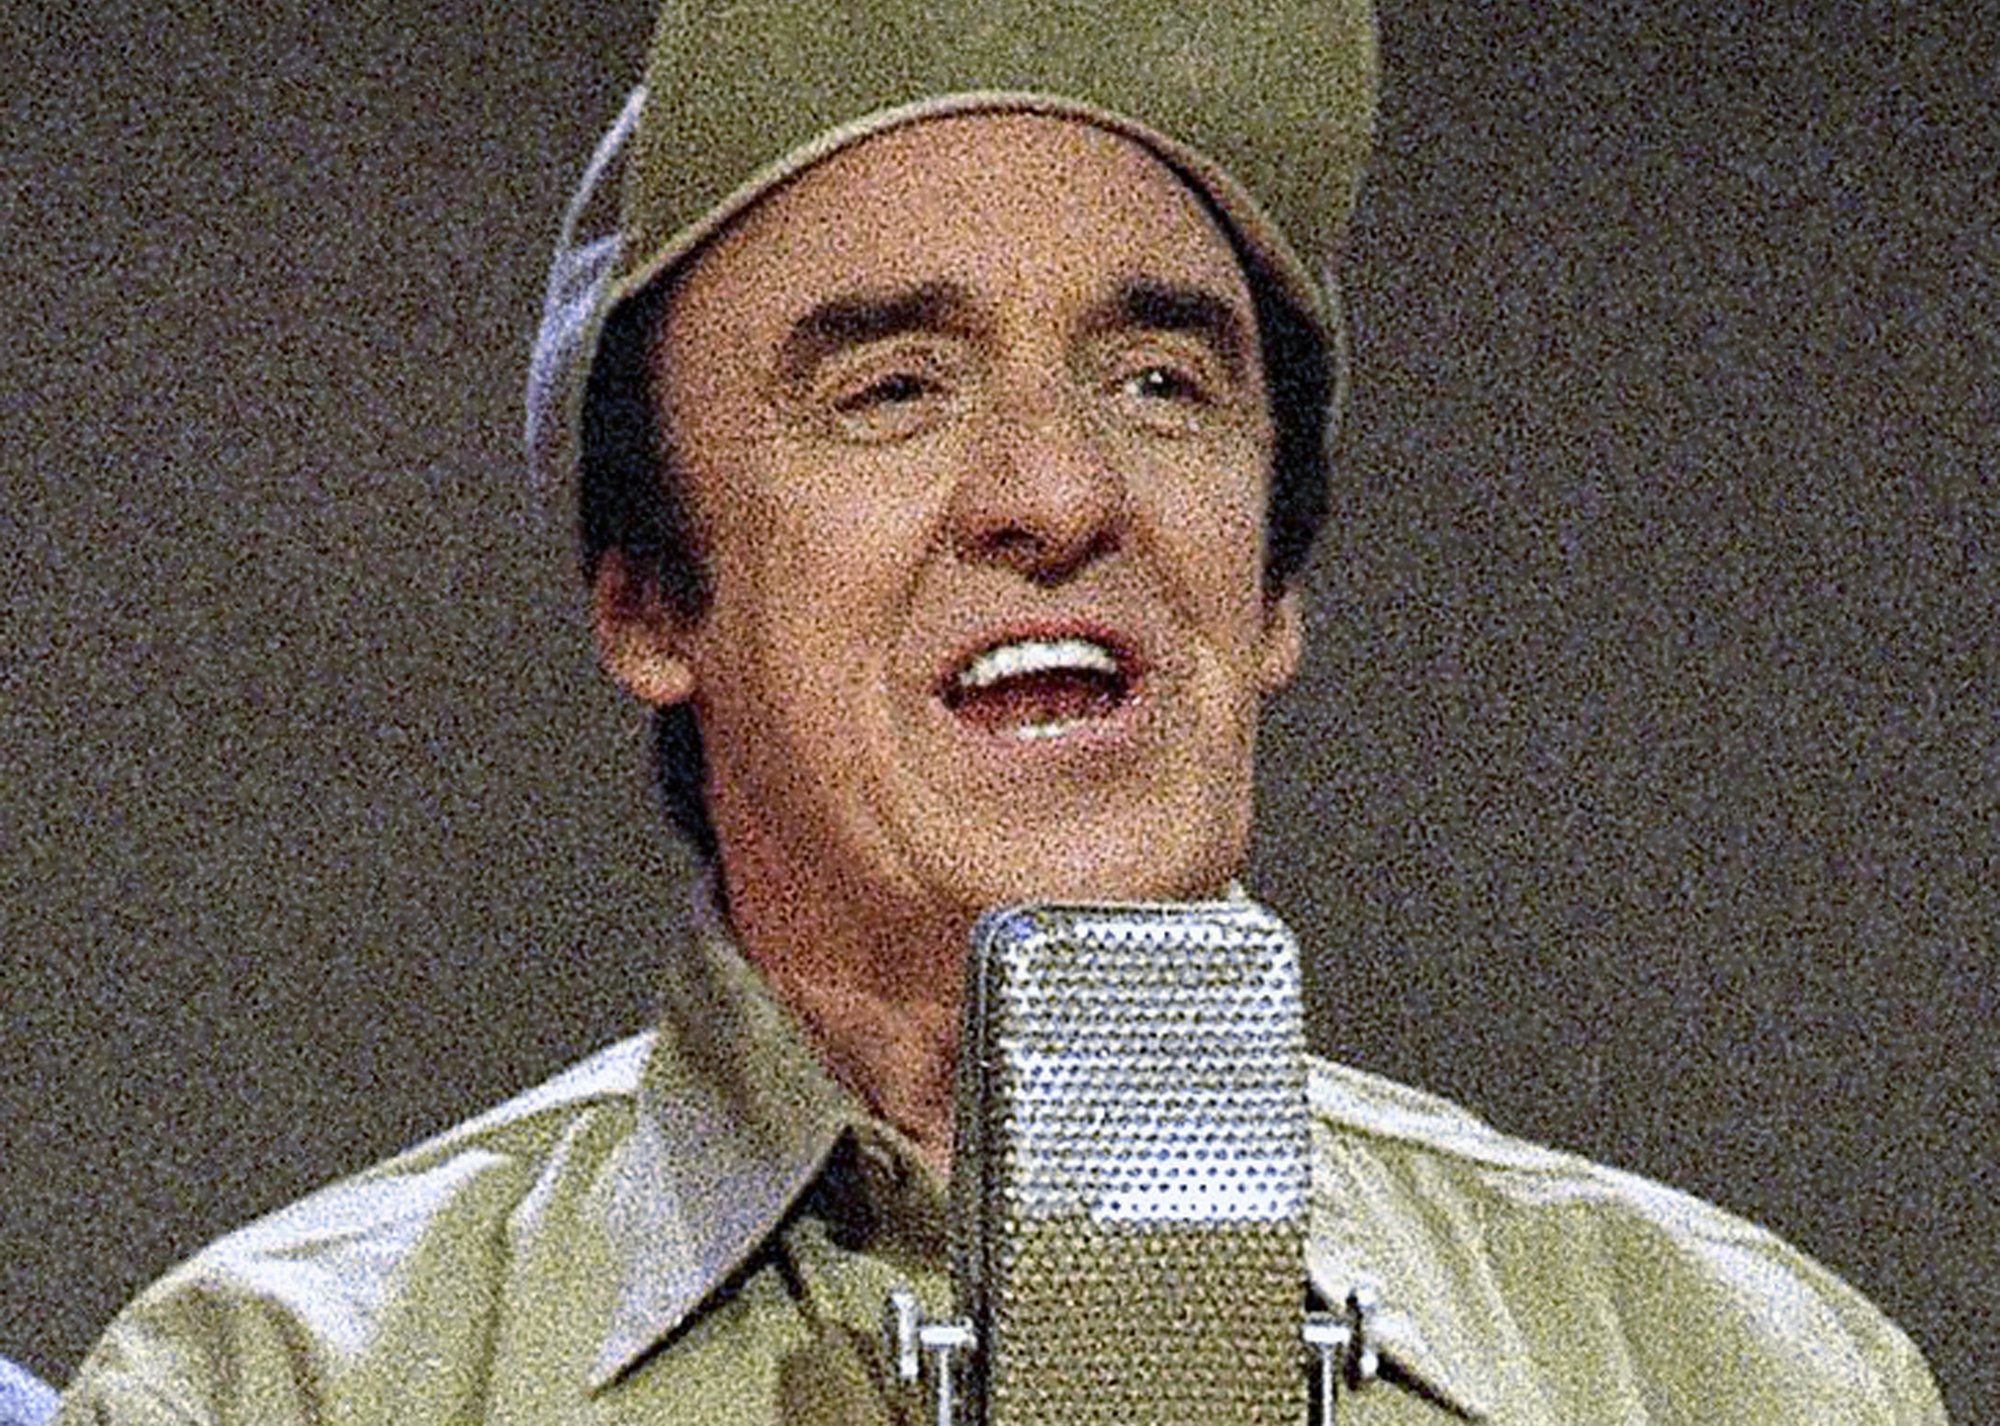 ows 151207817922833 - Breaking: The Popular Actor Who Played Gomer Pyle On The Andy Griffith Show, Jim Nabors, Dies At 87